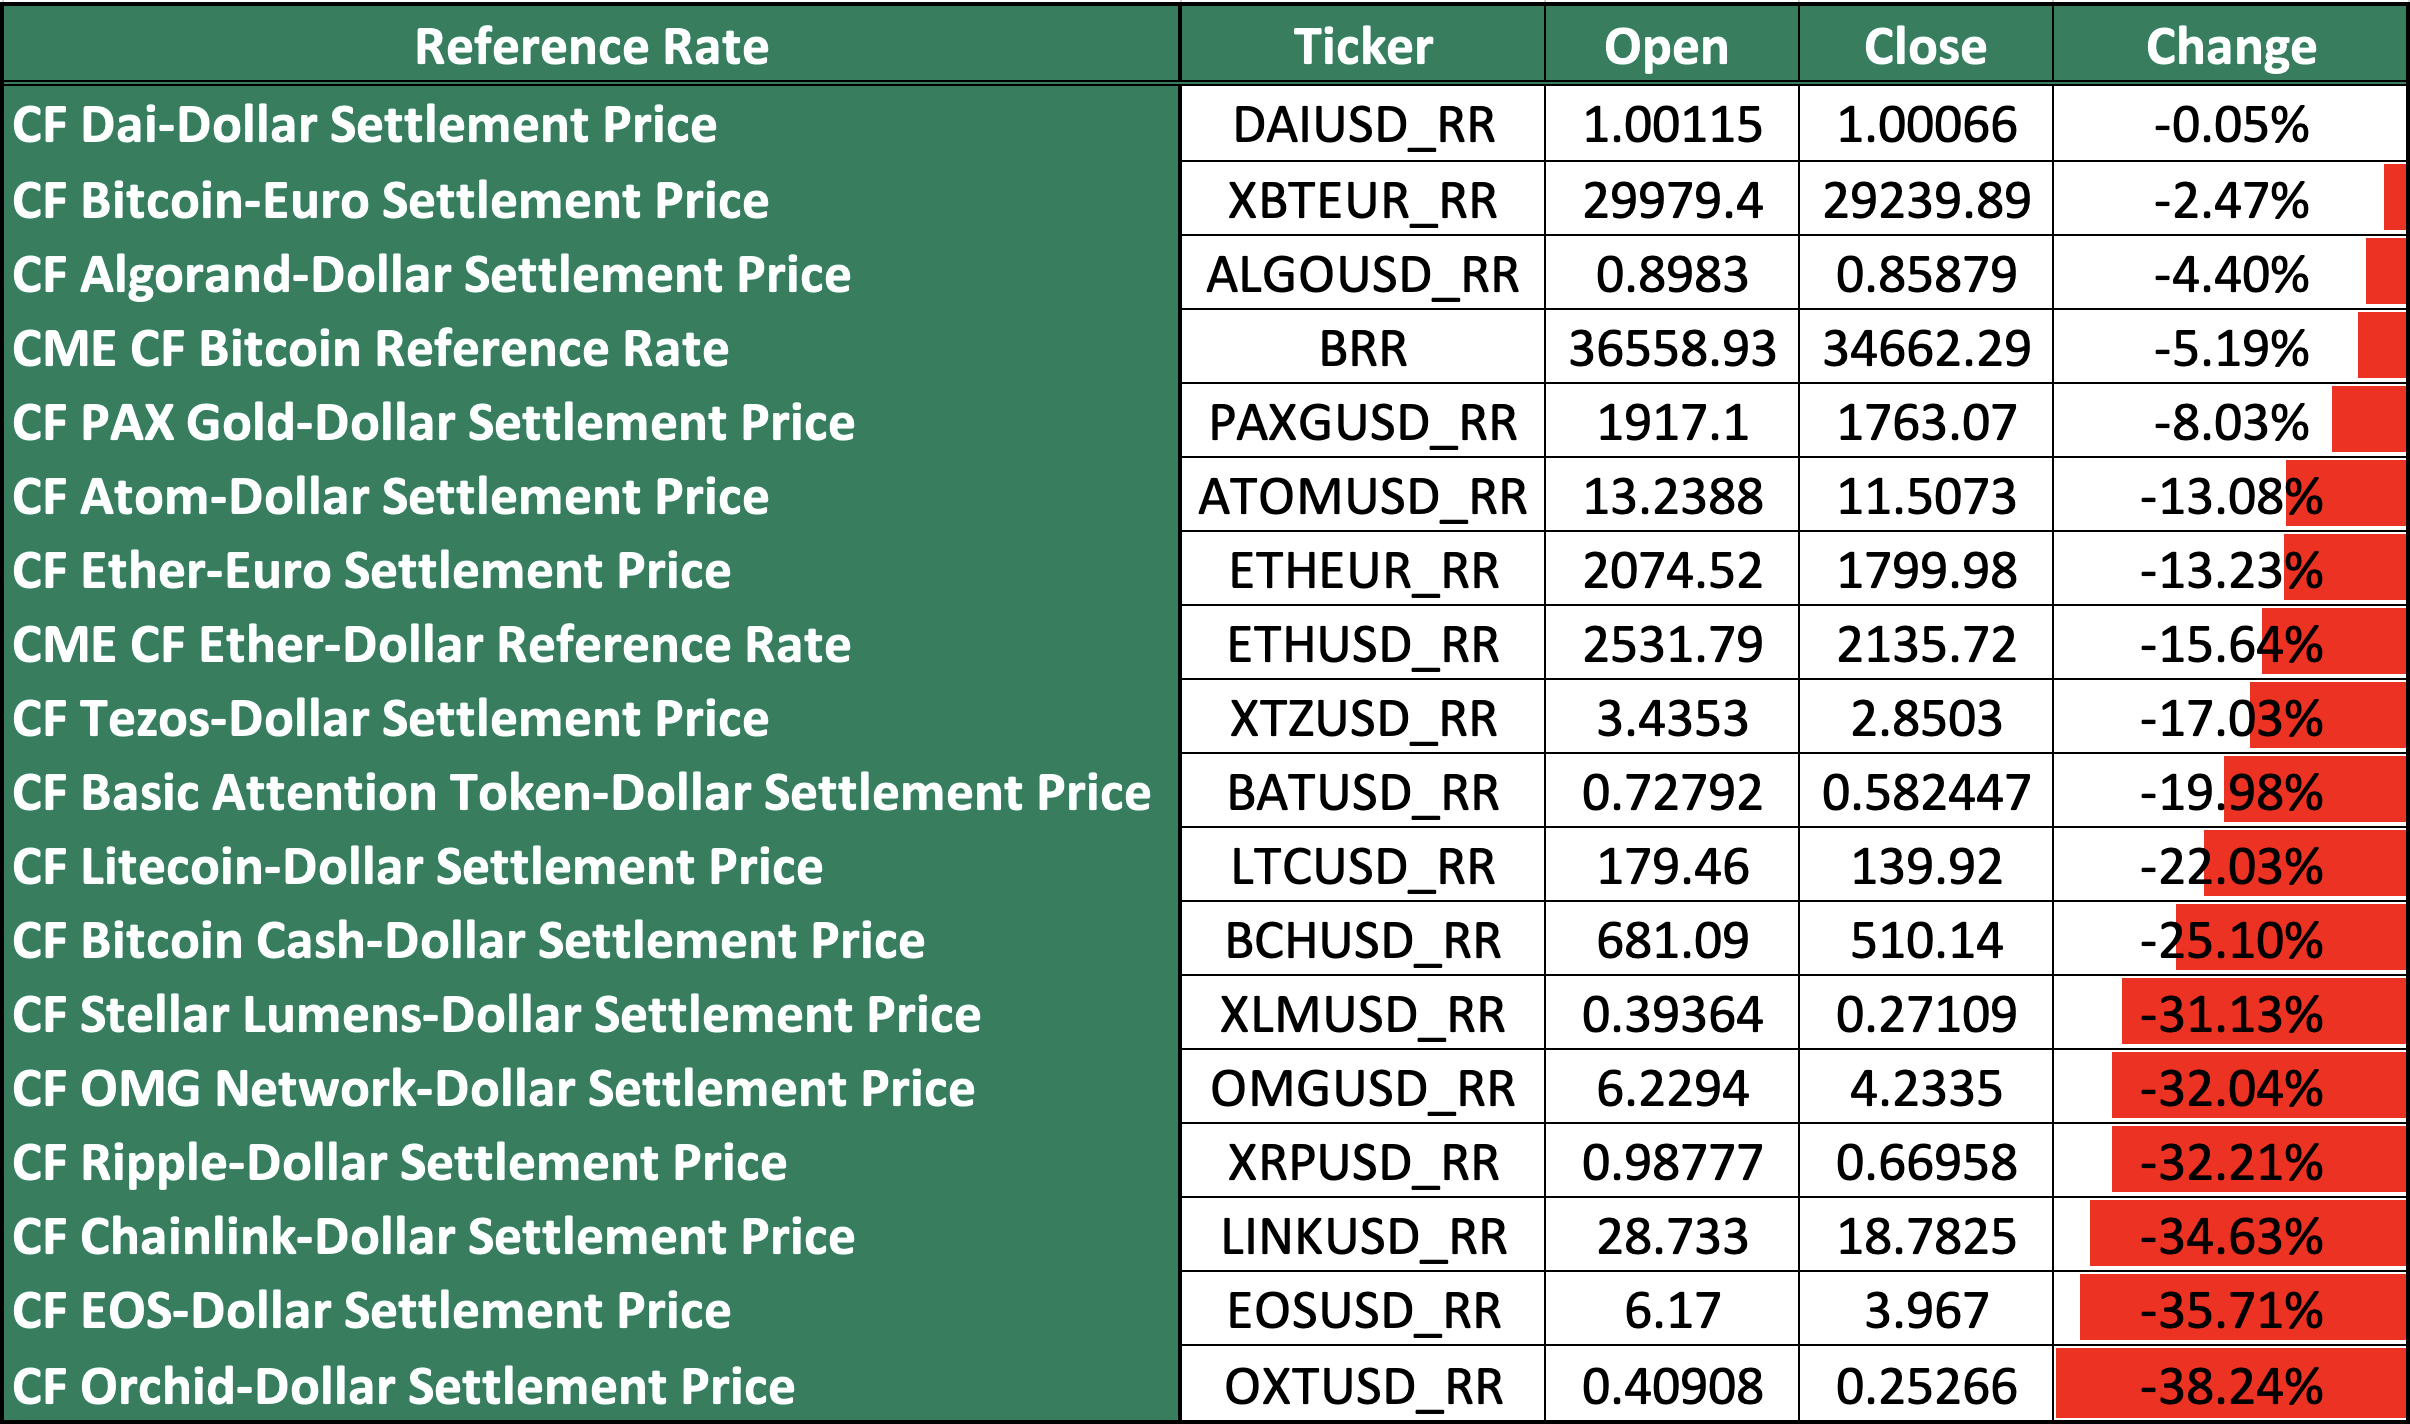 31-05-to-30-06-Reference-Rate-Returns